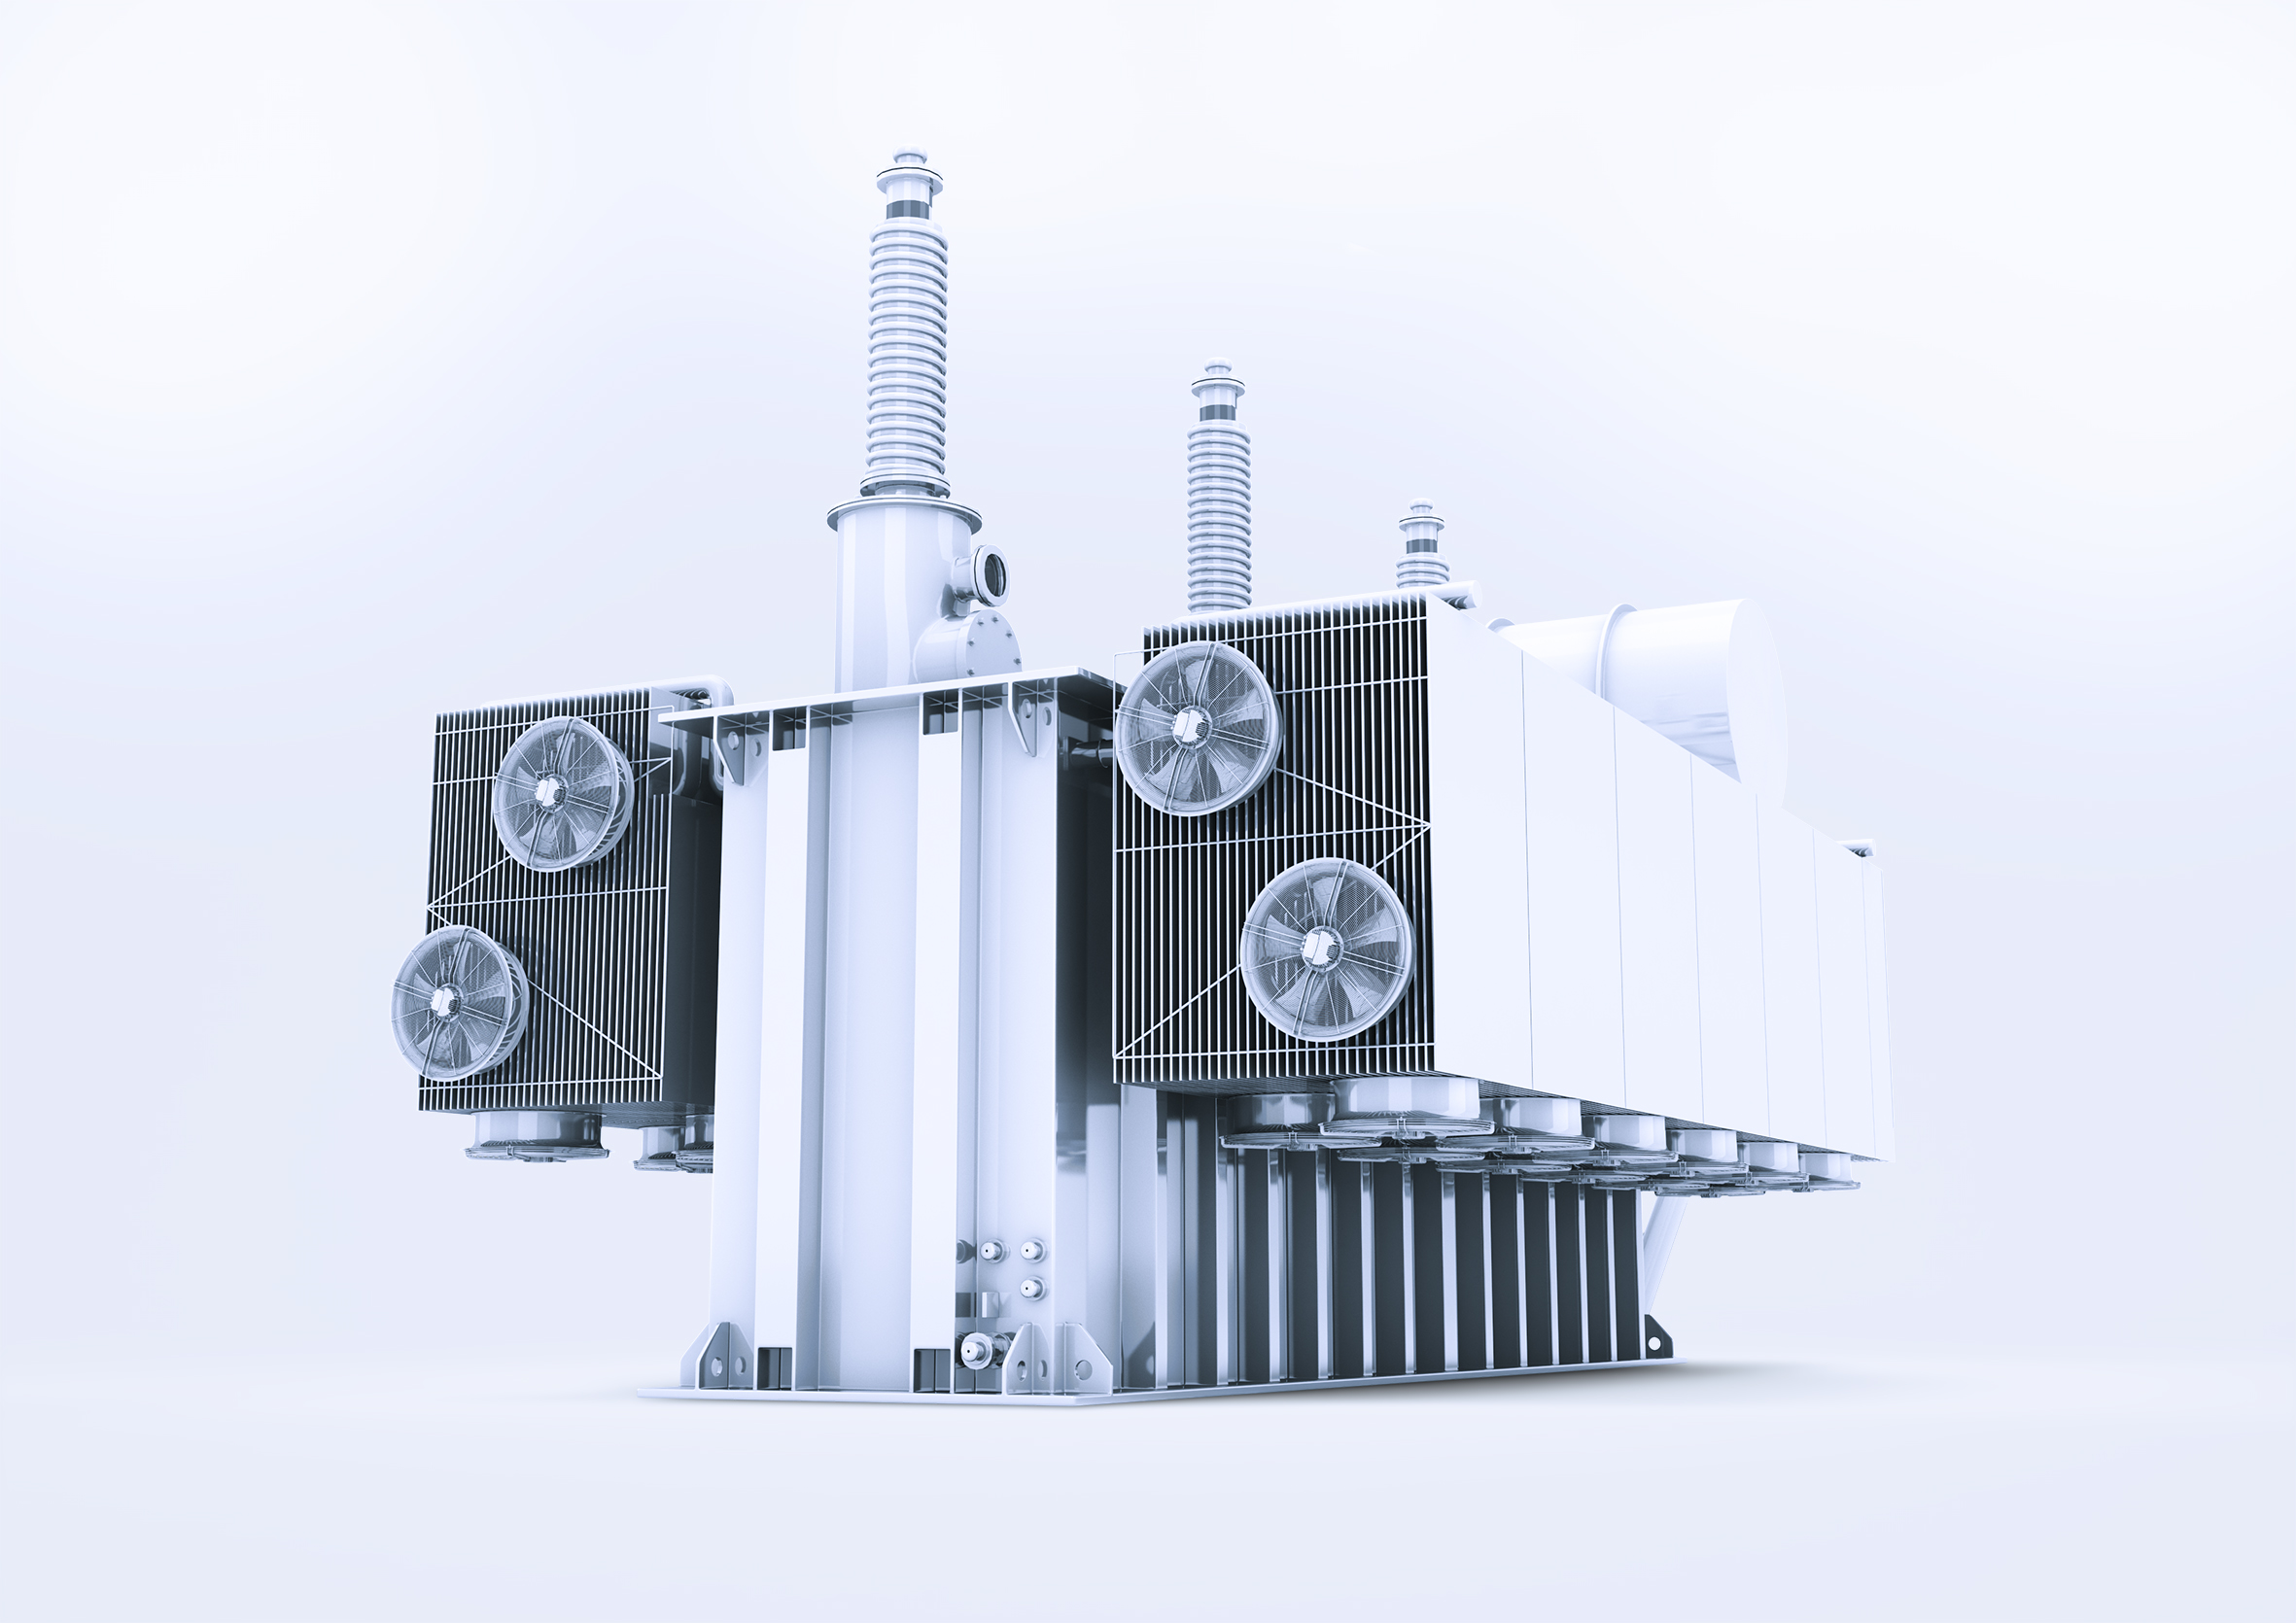 Keeping Transformers Cool Engineer Live How To Increase Currents Of A Transformer The Fans Used In Cooling Systems Large Must Withstand Harsh Conditions Here Robust Technology That Works Reliably For Decades And Does